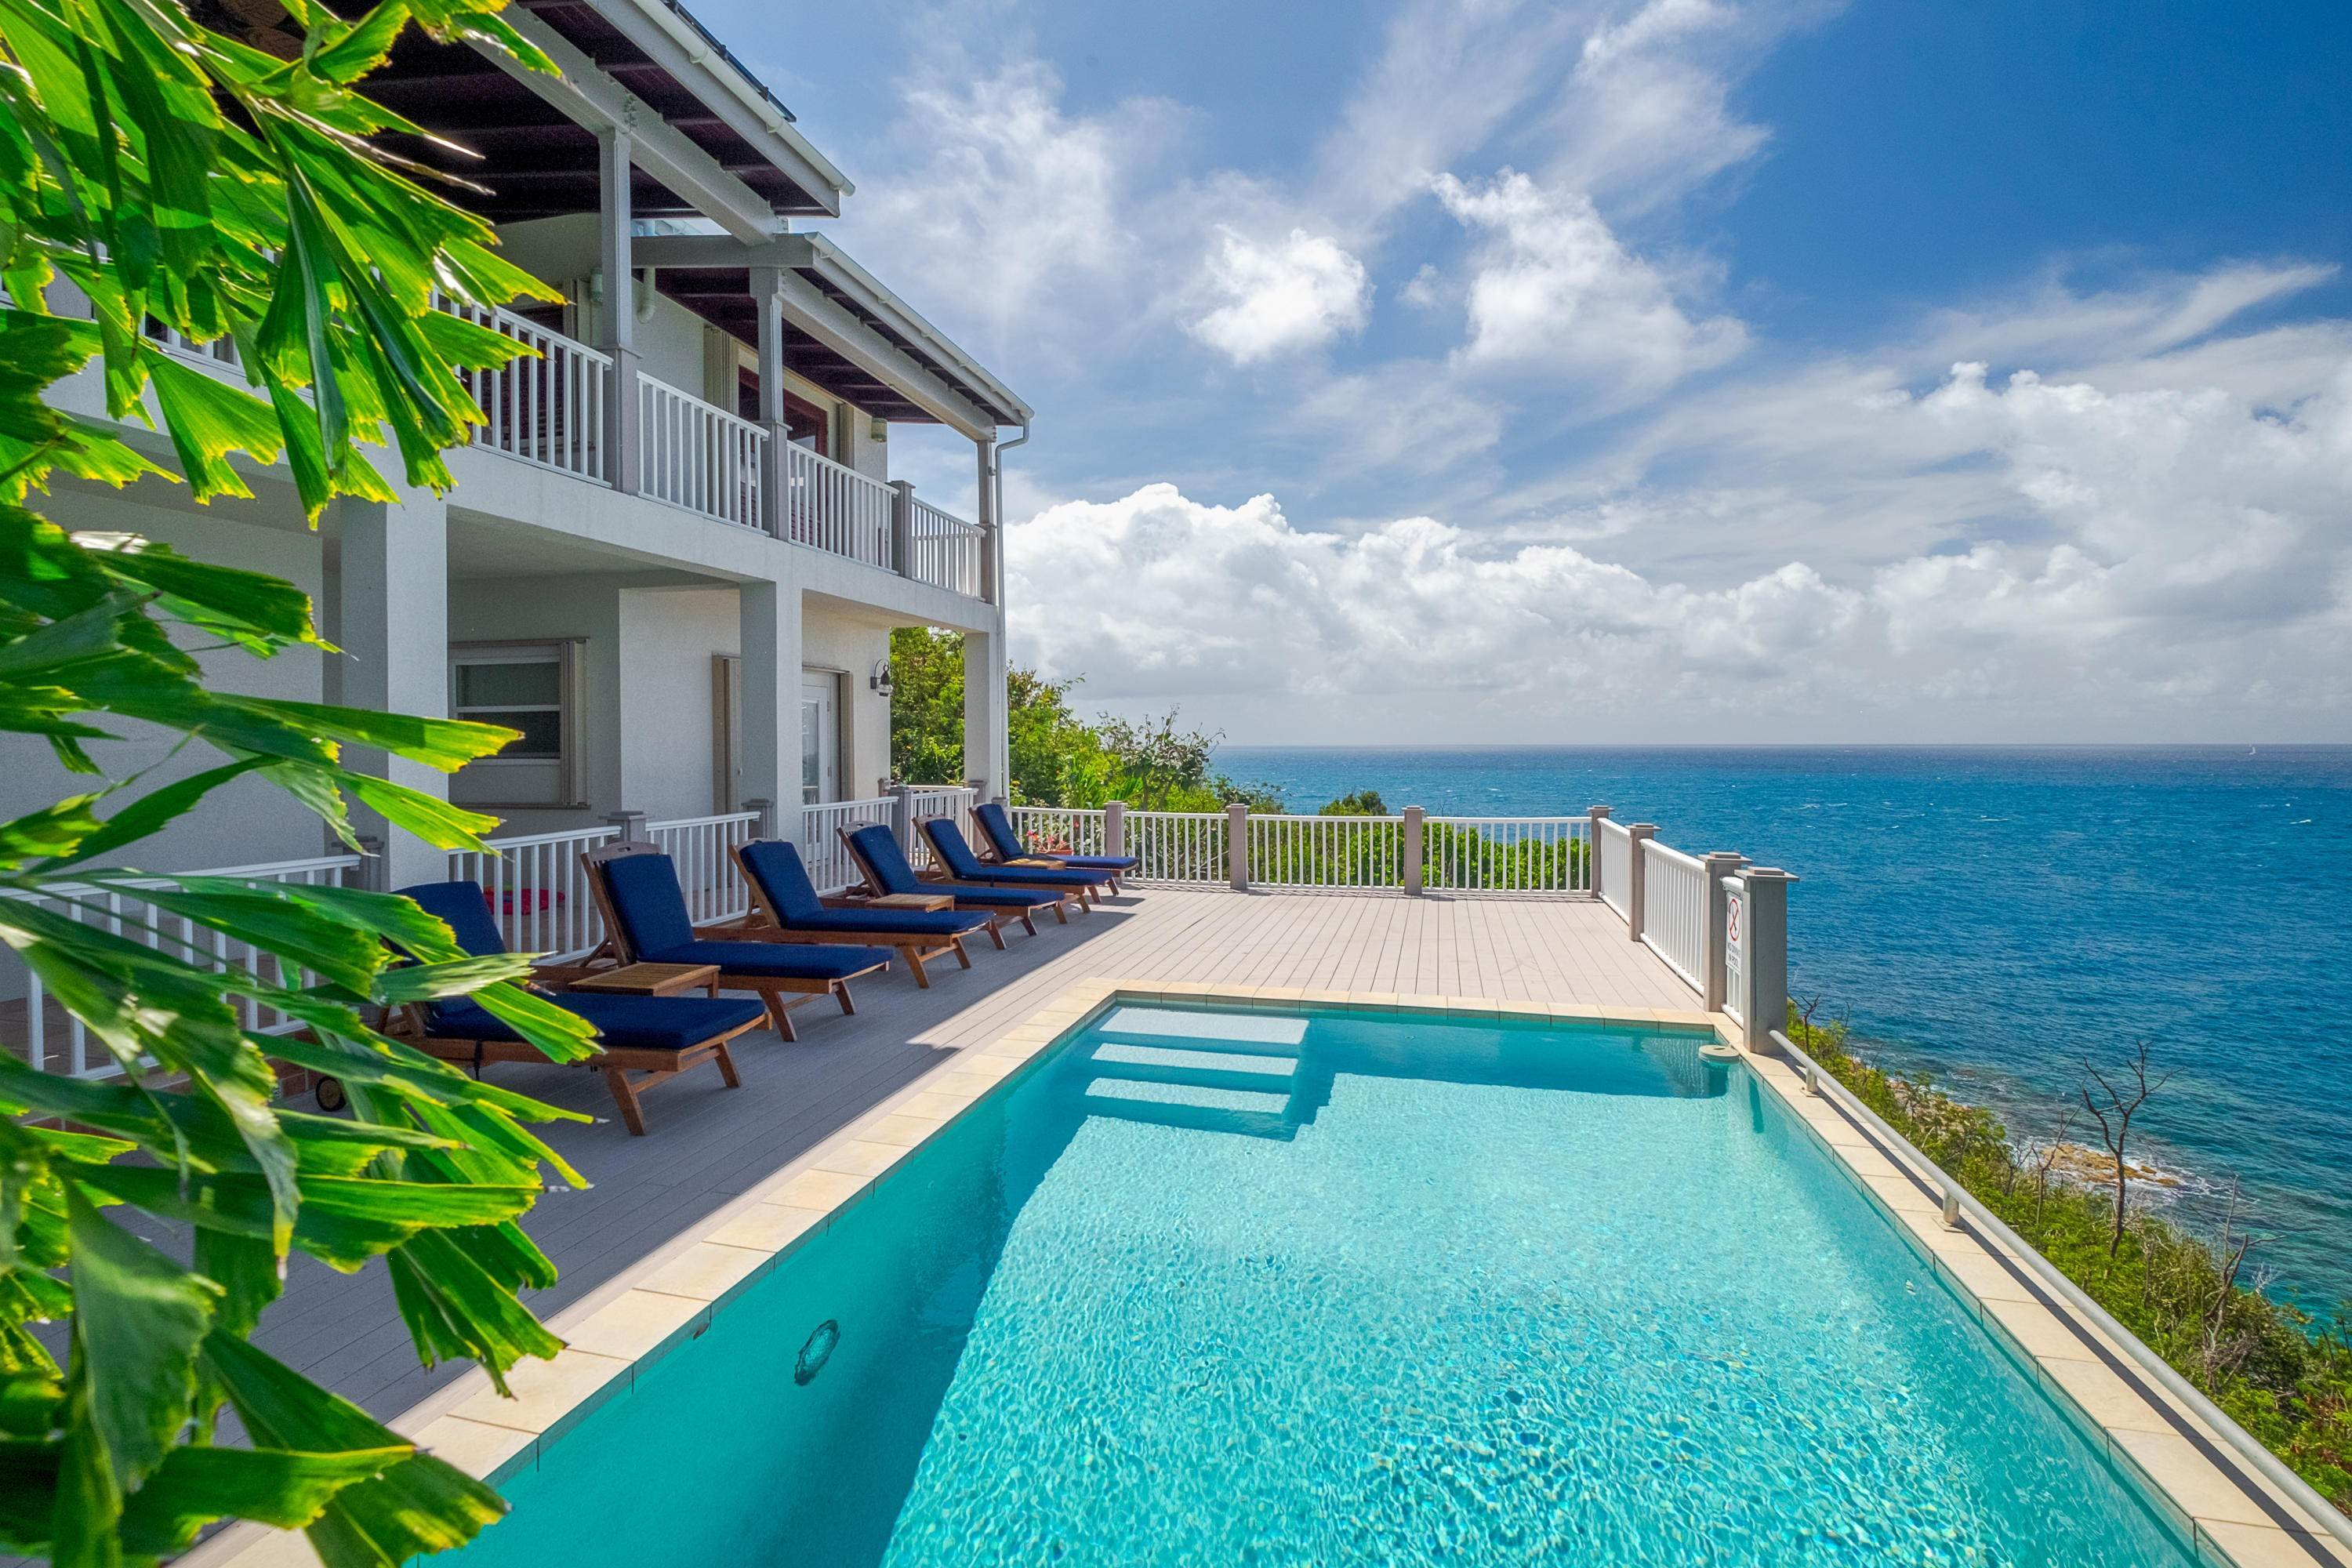 Single Family Homes for Sale at Chocolate Hole St John, Virgin Islands 00830 United States Virgin Islands